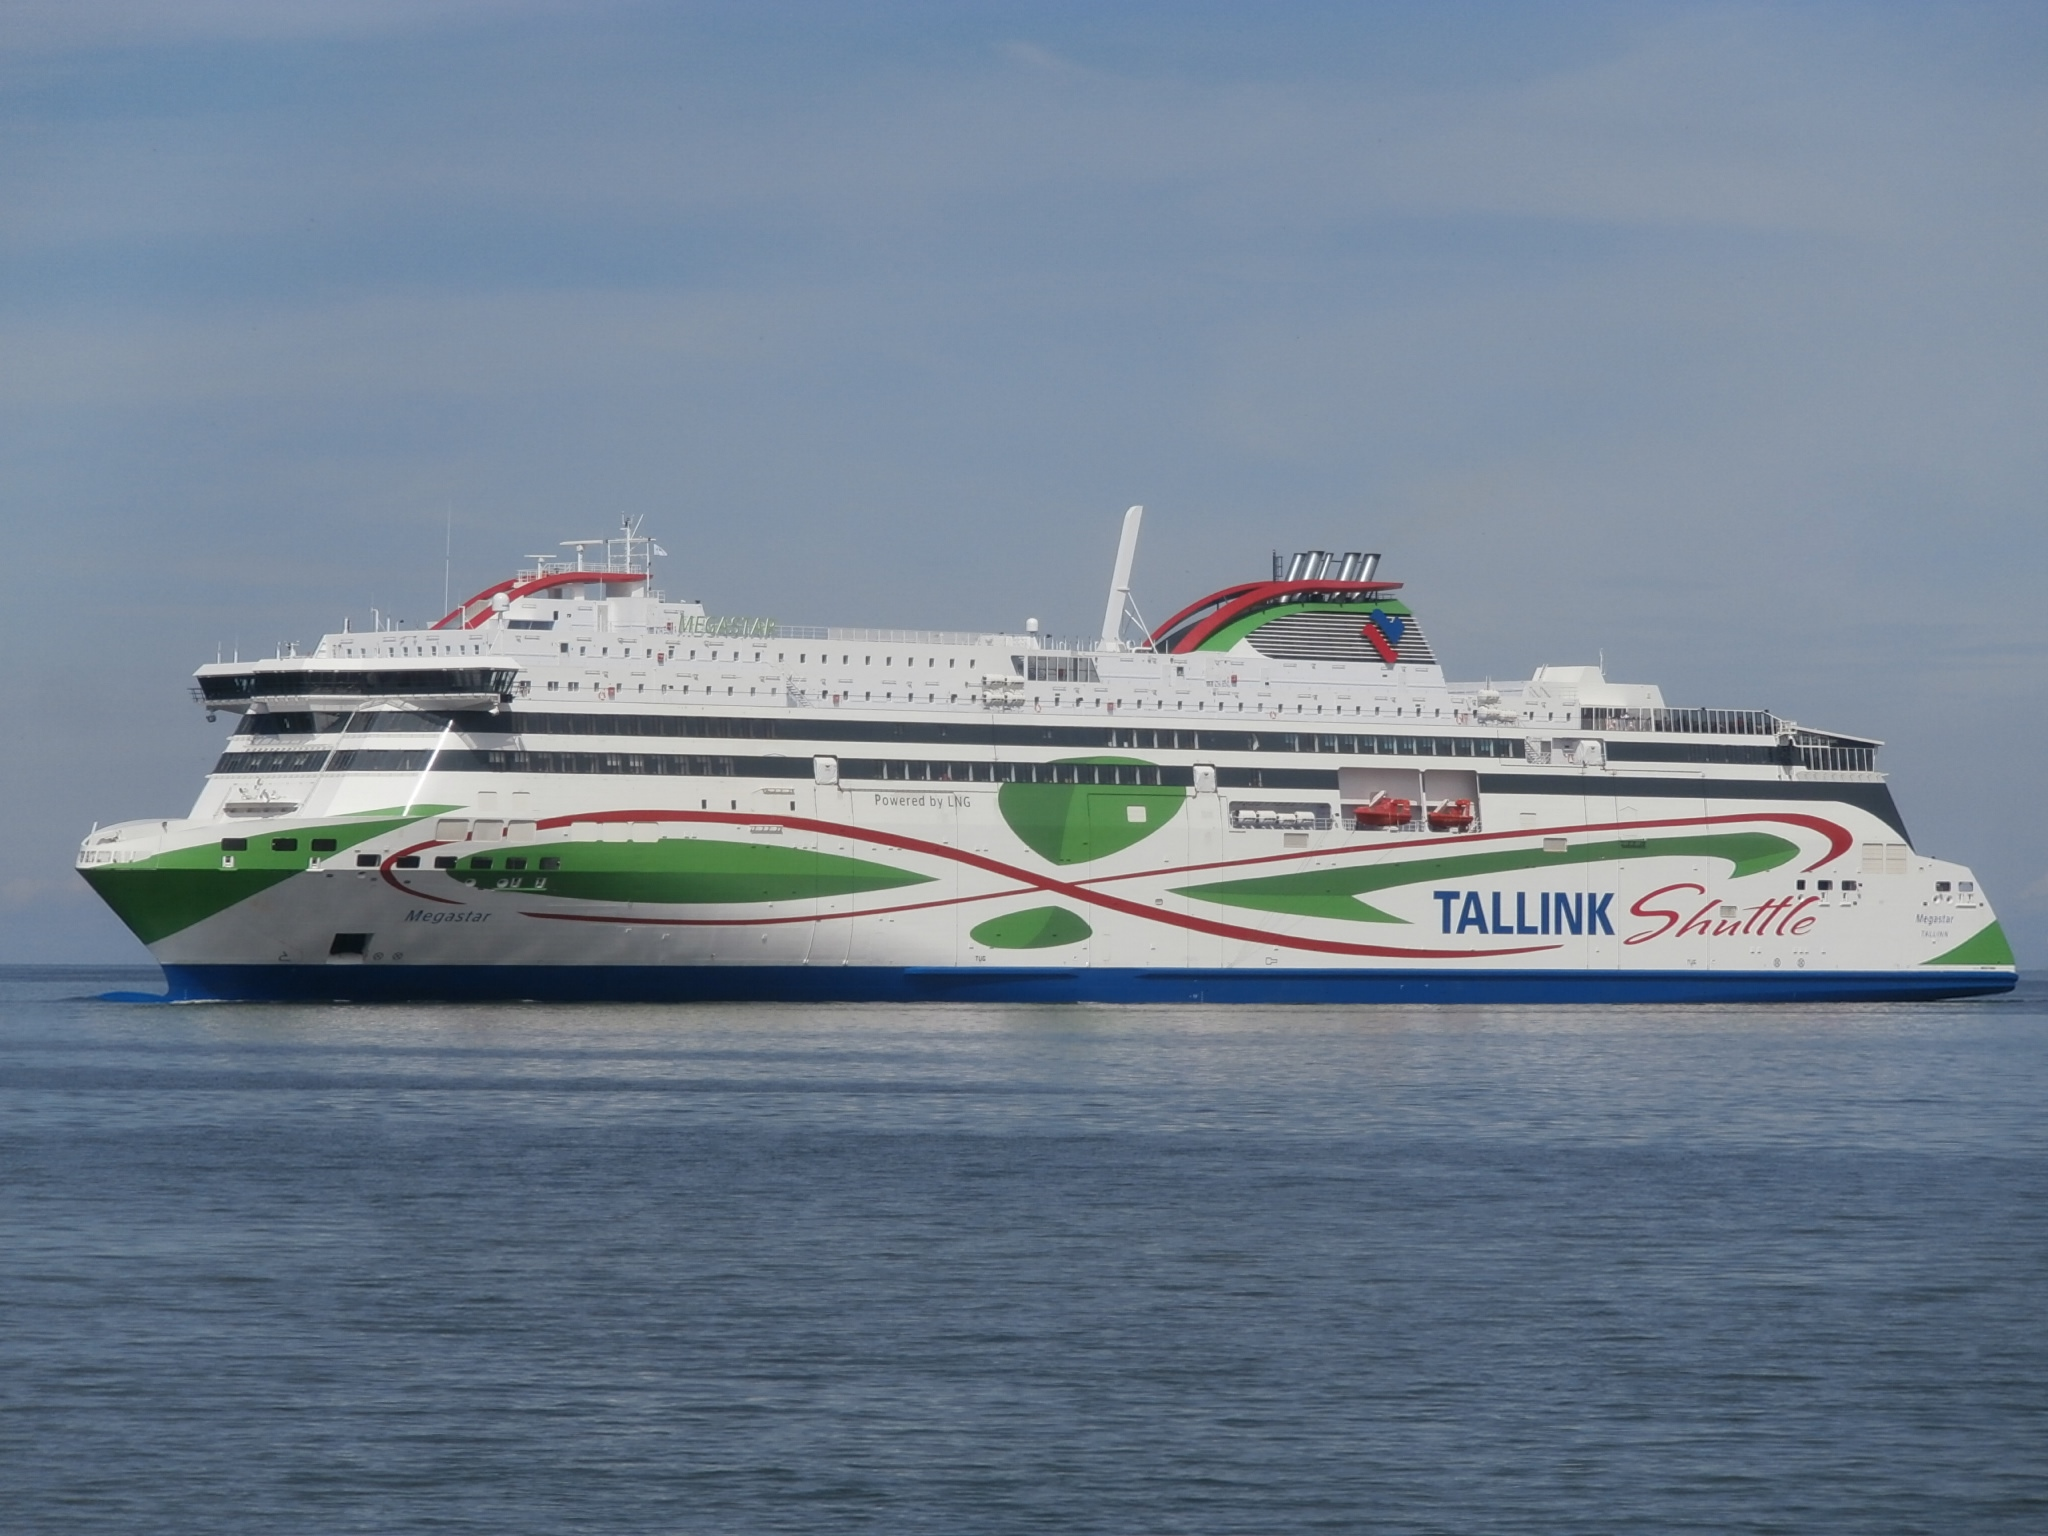 f0339314572ea File:Megastar arriving in Tallinn 10 July 2017.jpg - Wikimedia Commons